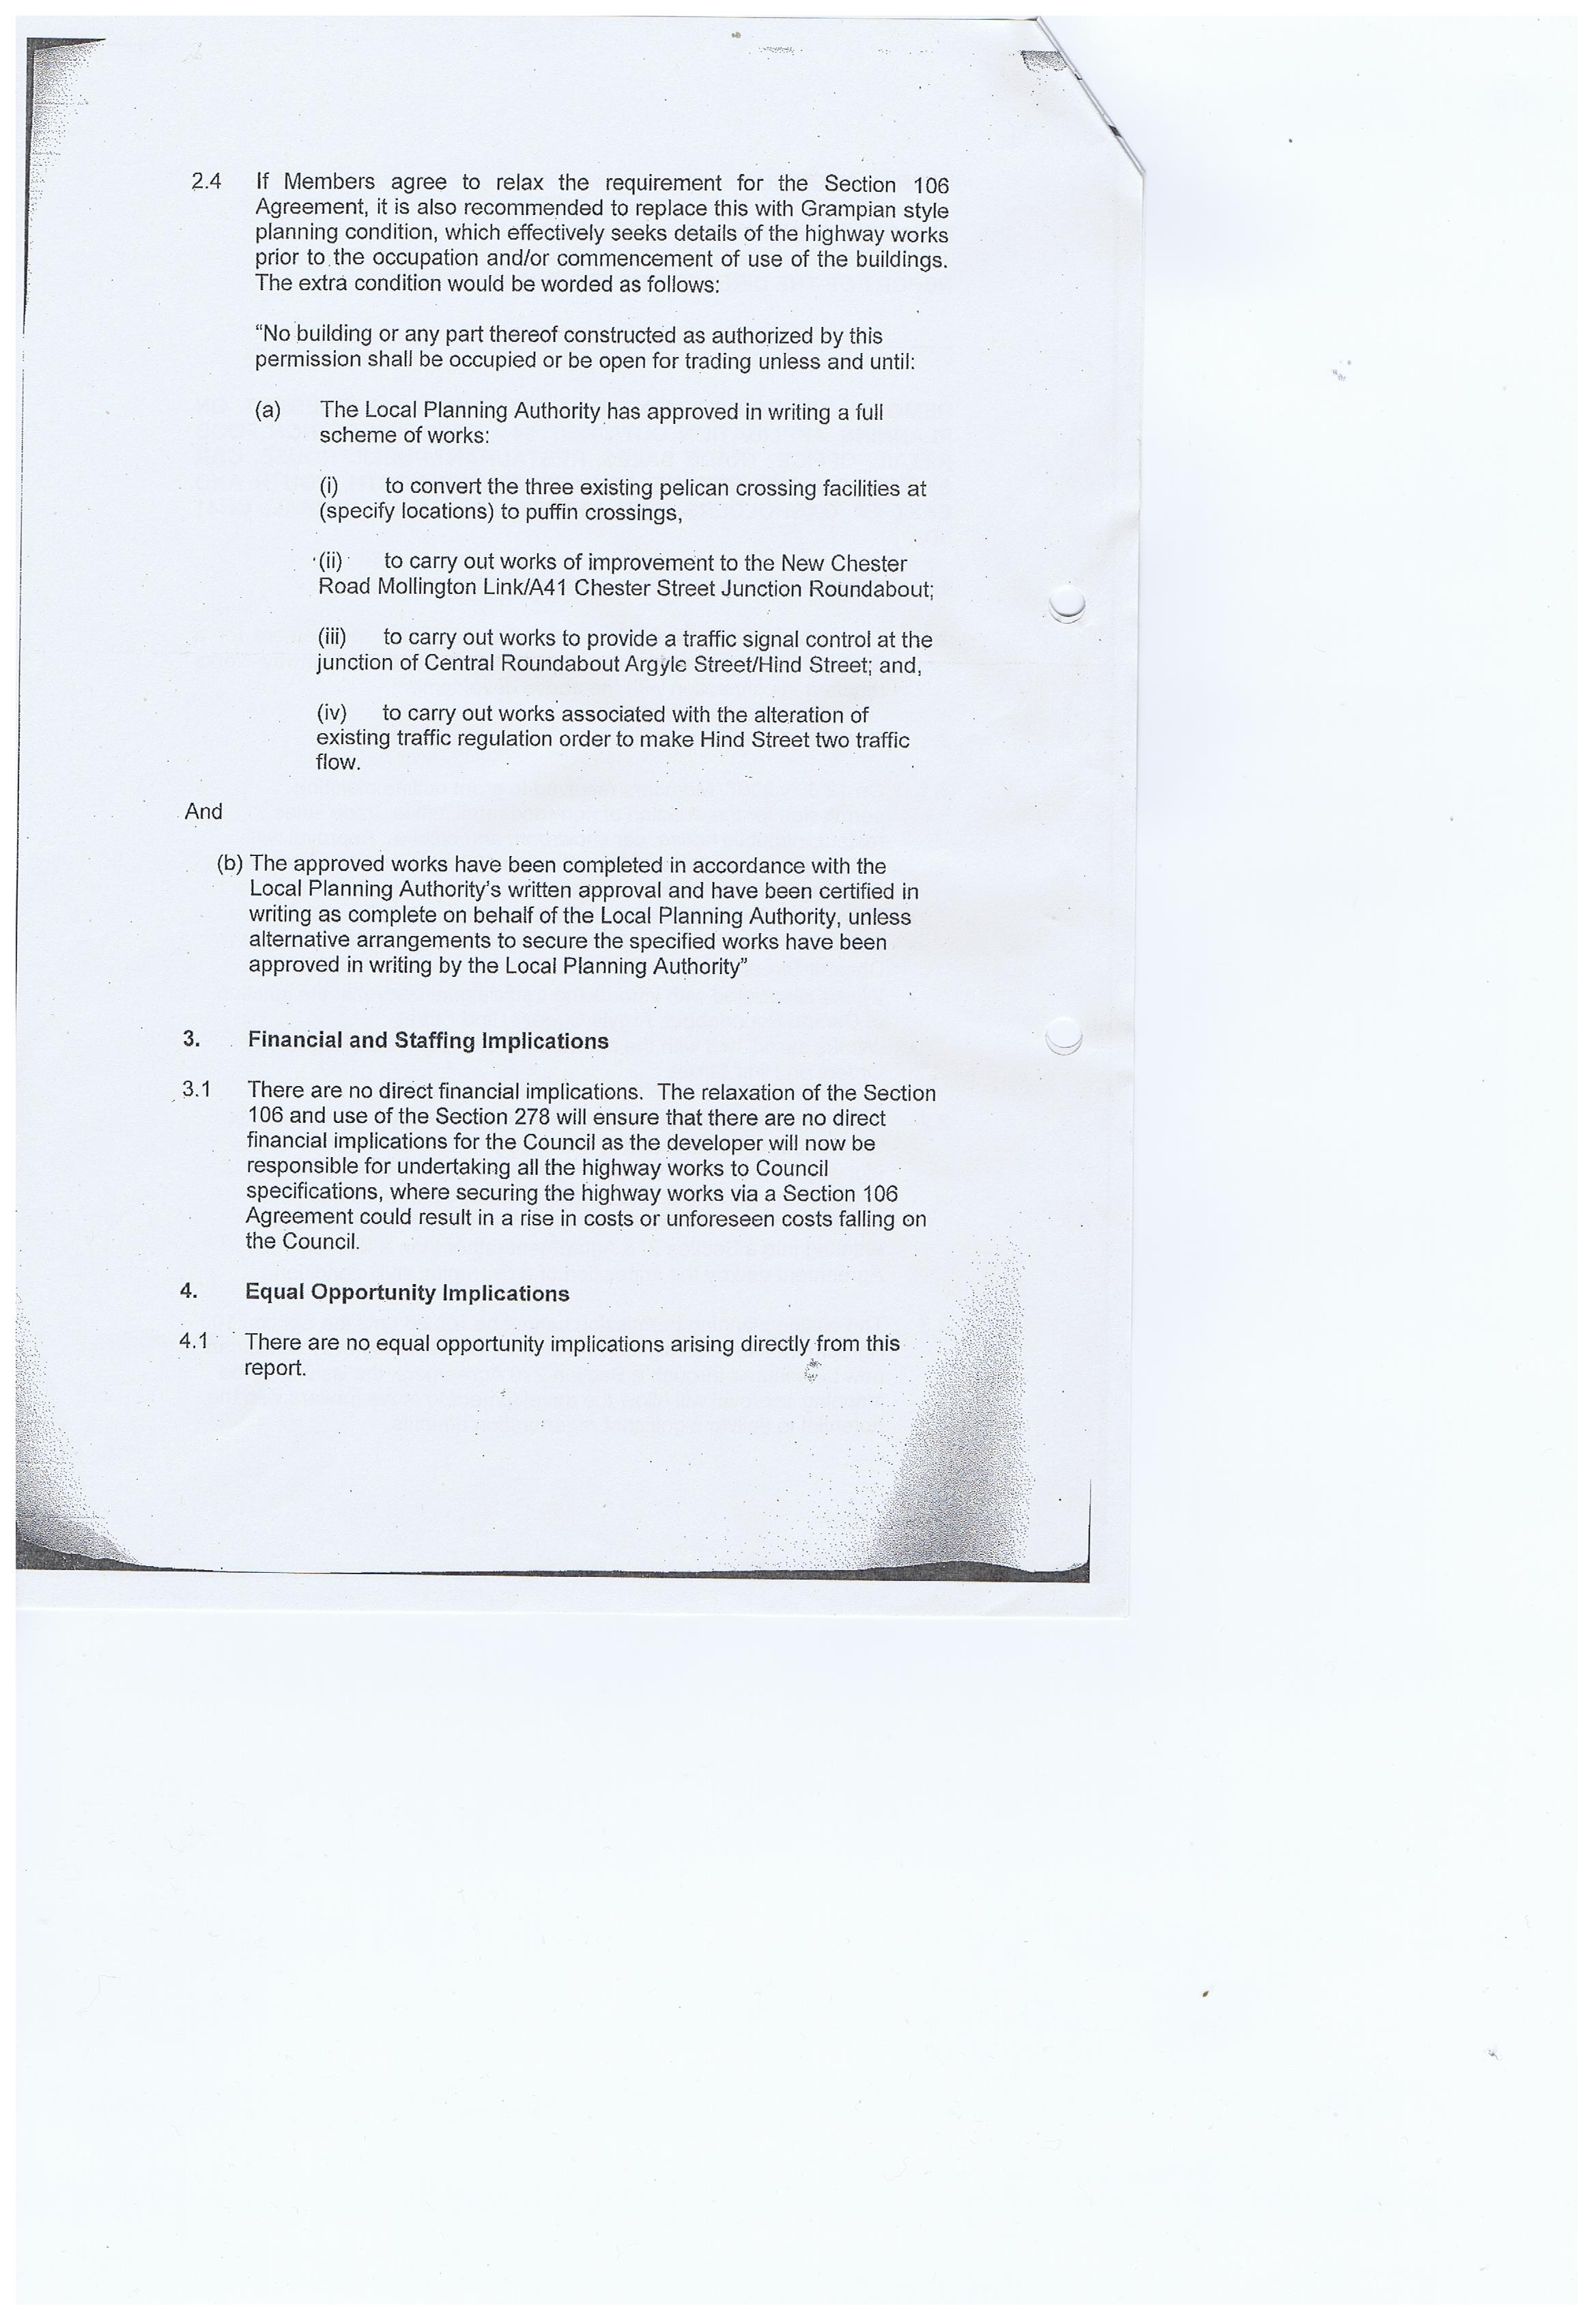 Page 2 of 3